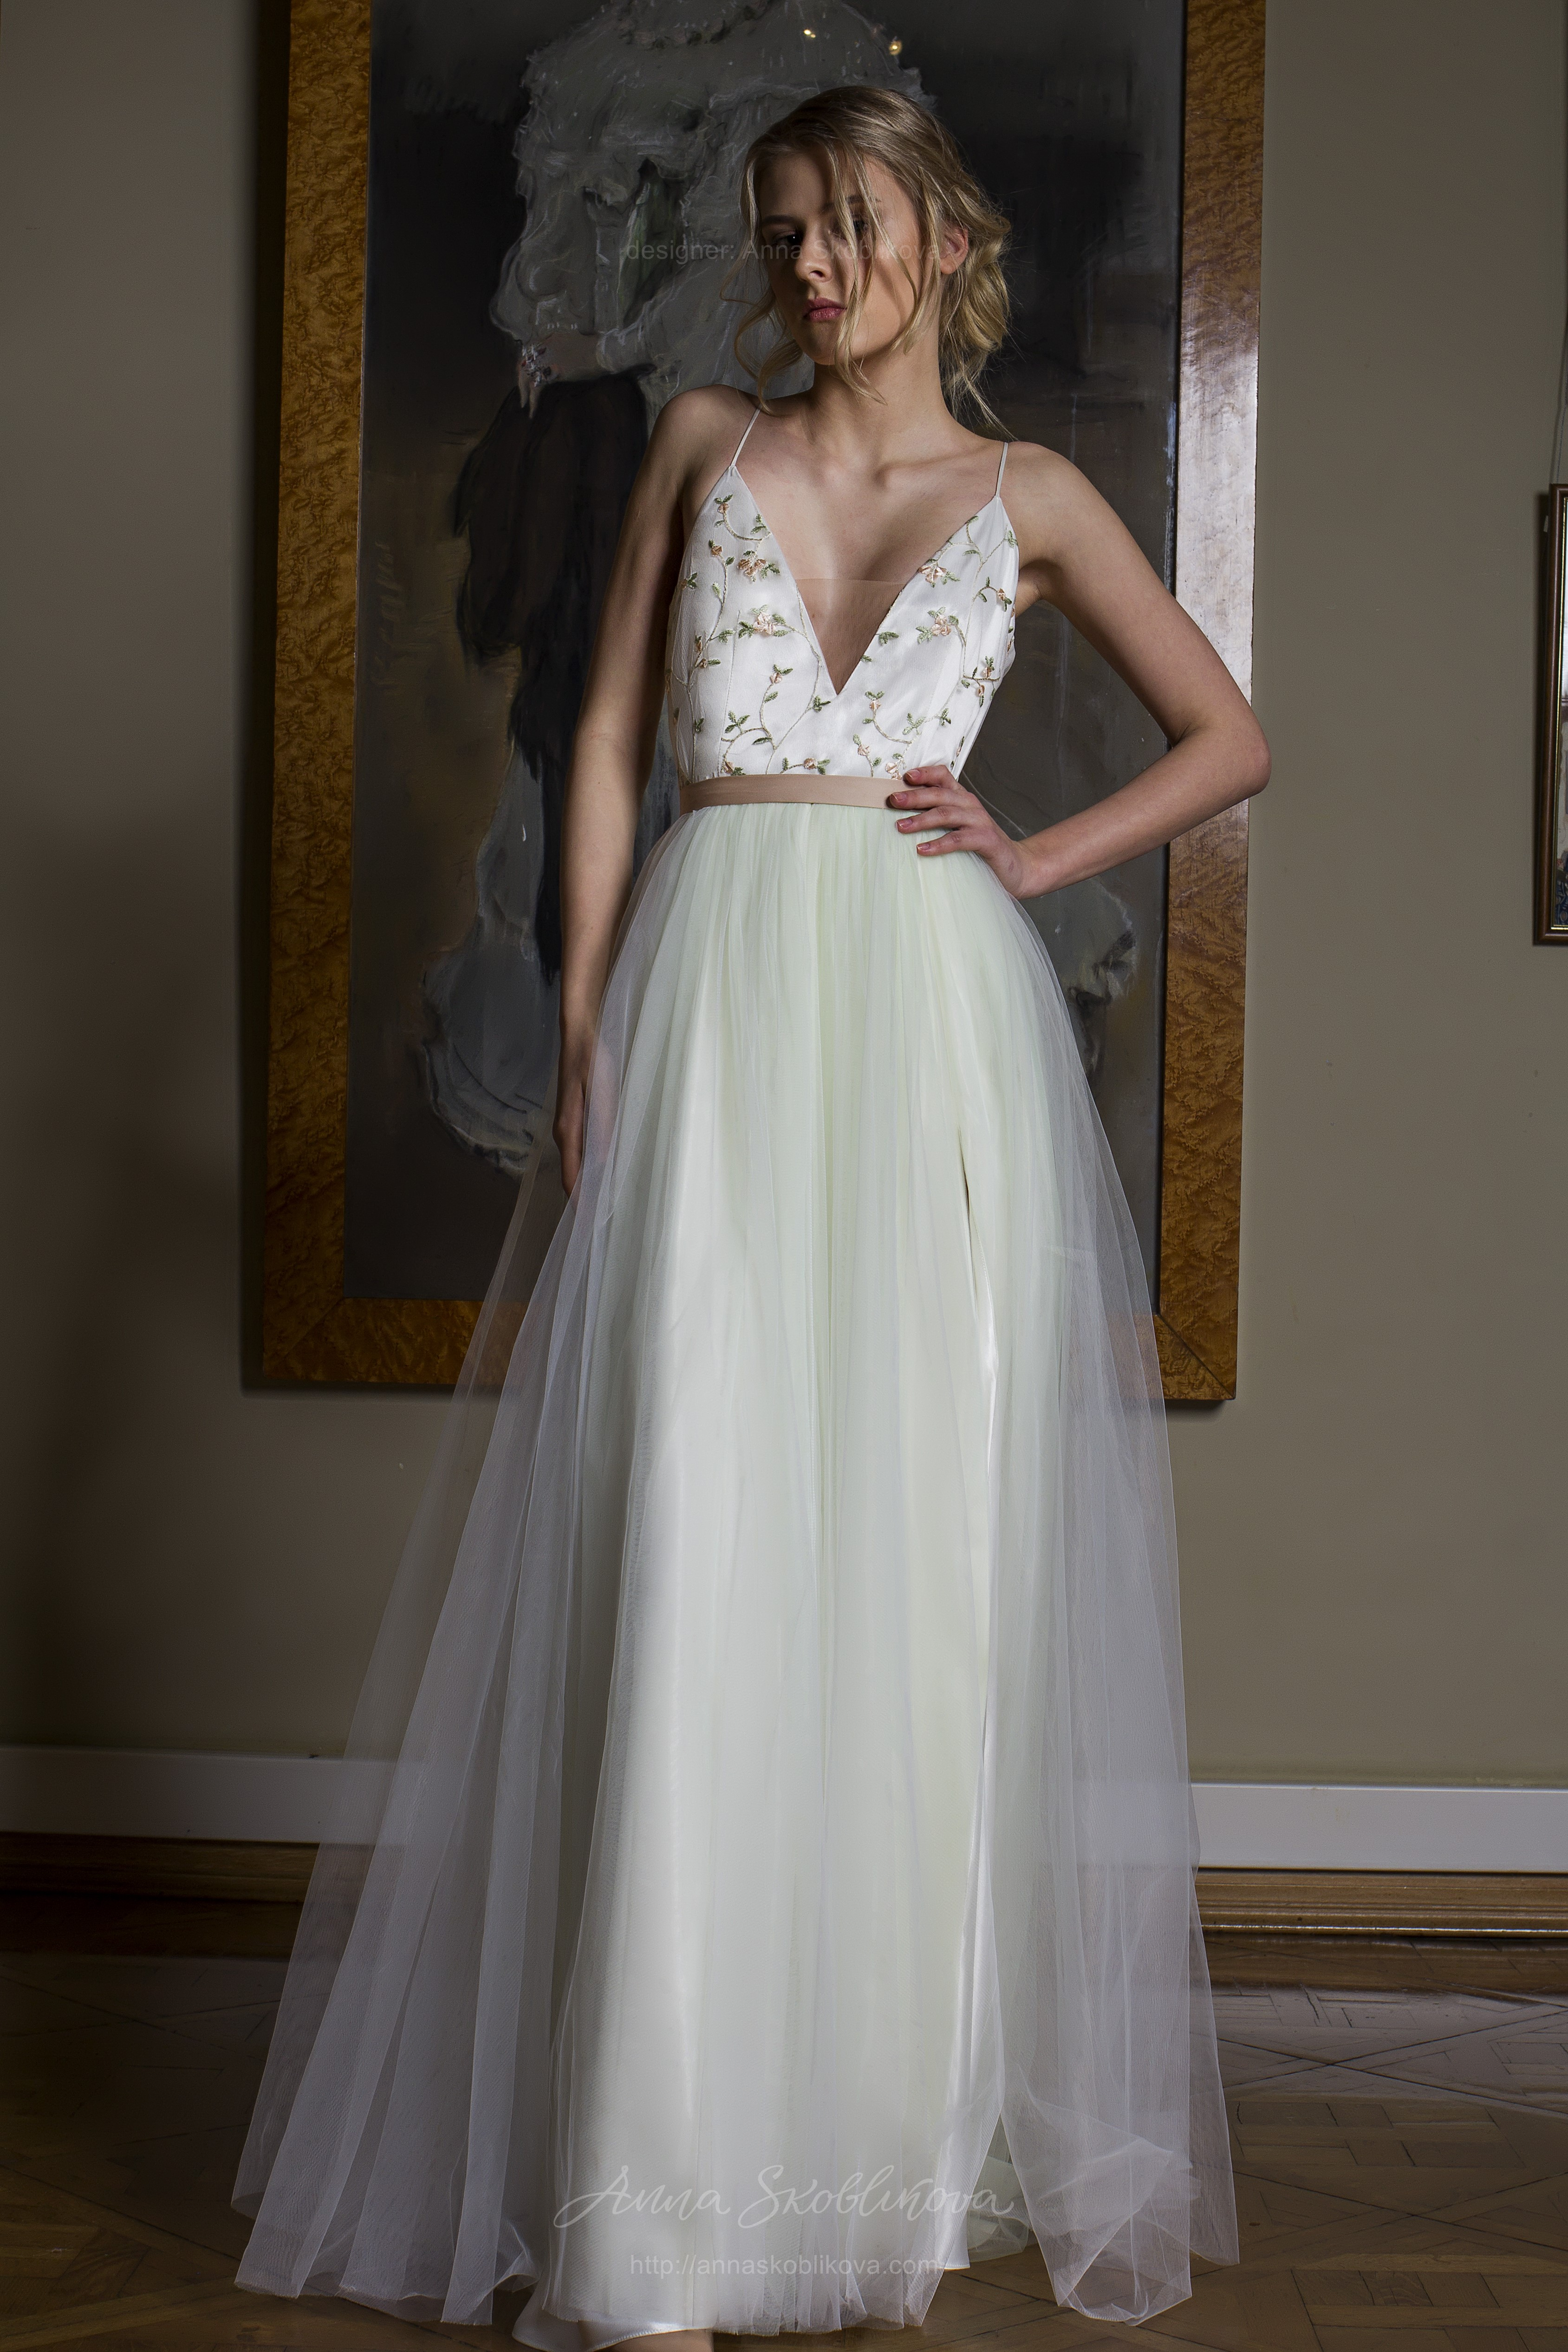 Apple Blossom - Unique designer wedding dress with a full skirt ...